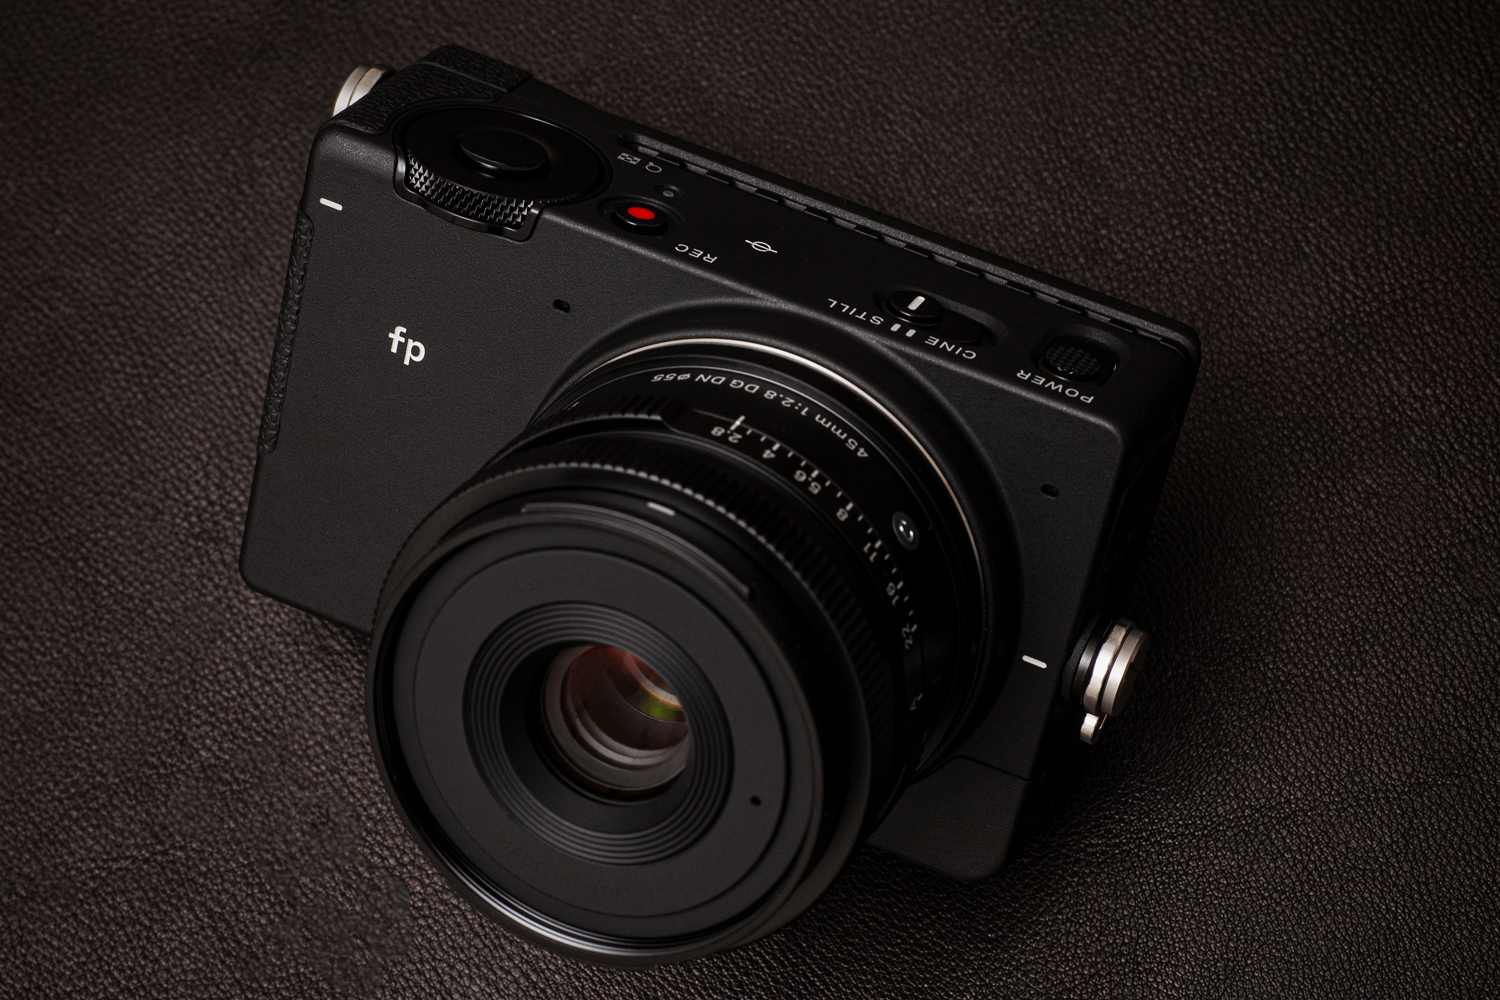 SIGMA (シグマ) fp & Contemporary 45mm F2.8 DG DN キット